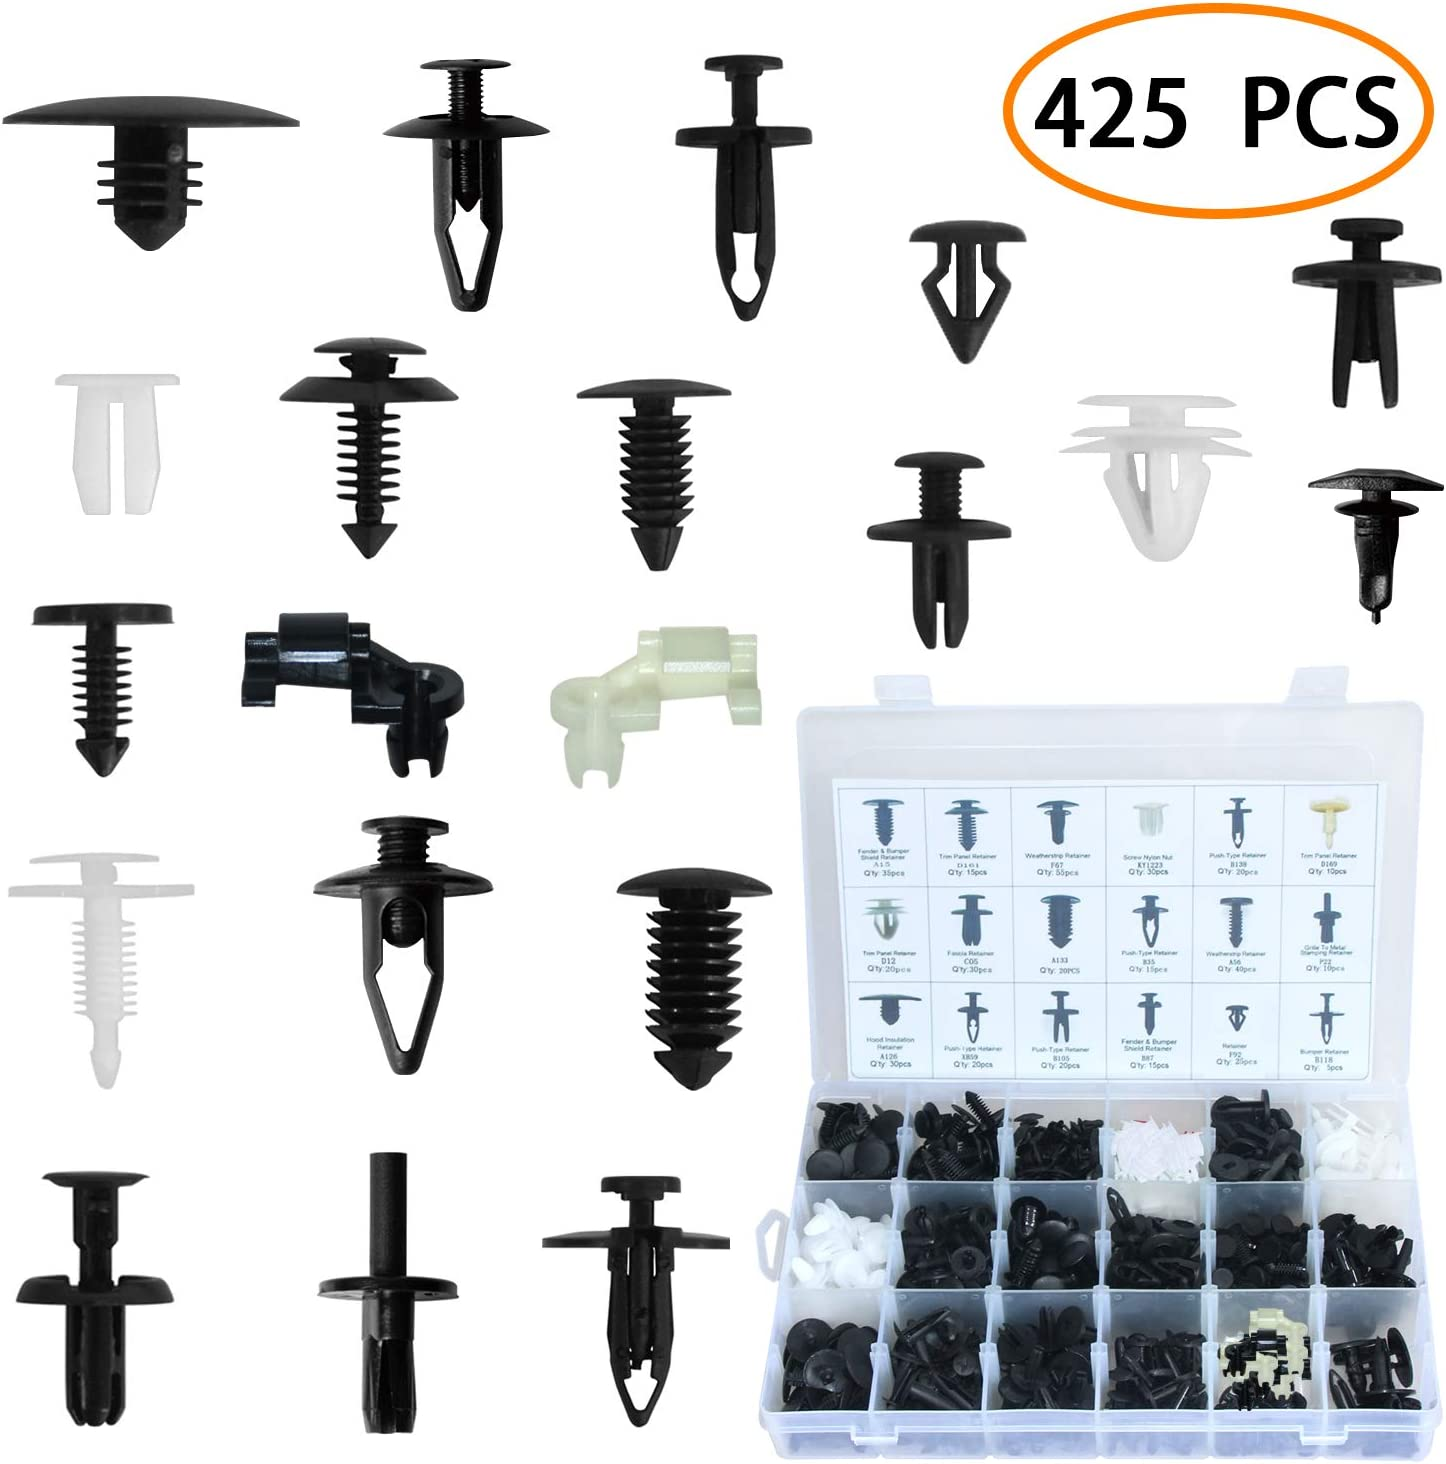 JOJOZZ 30 Pcs Black Plastic Rivets Push Type Panel Retainer Fastener Clip for Automotive Panel Fixing 4mm